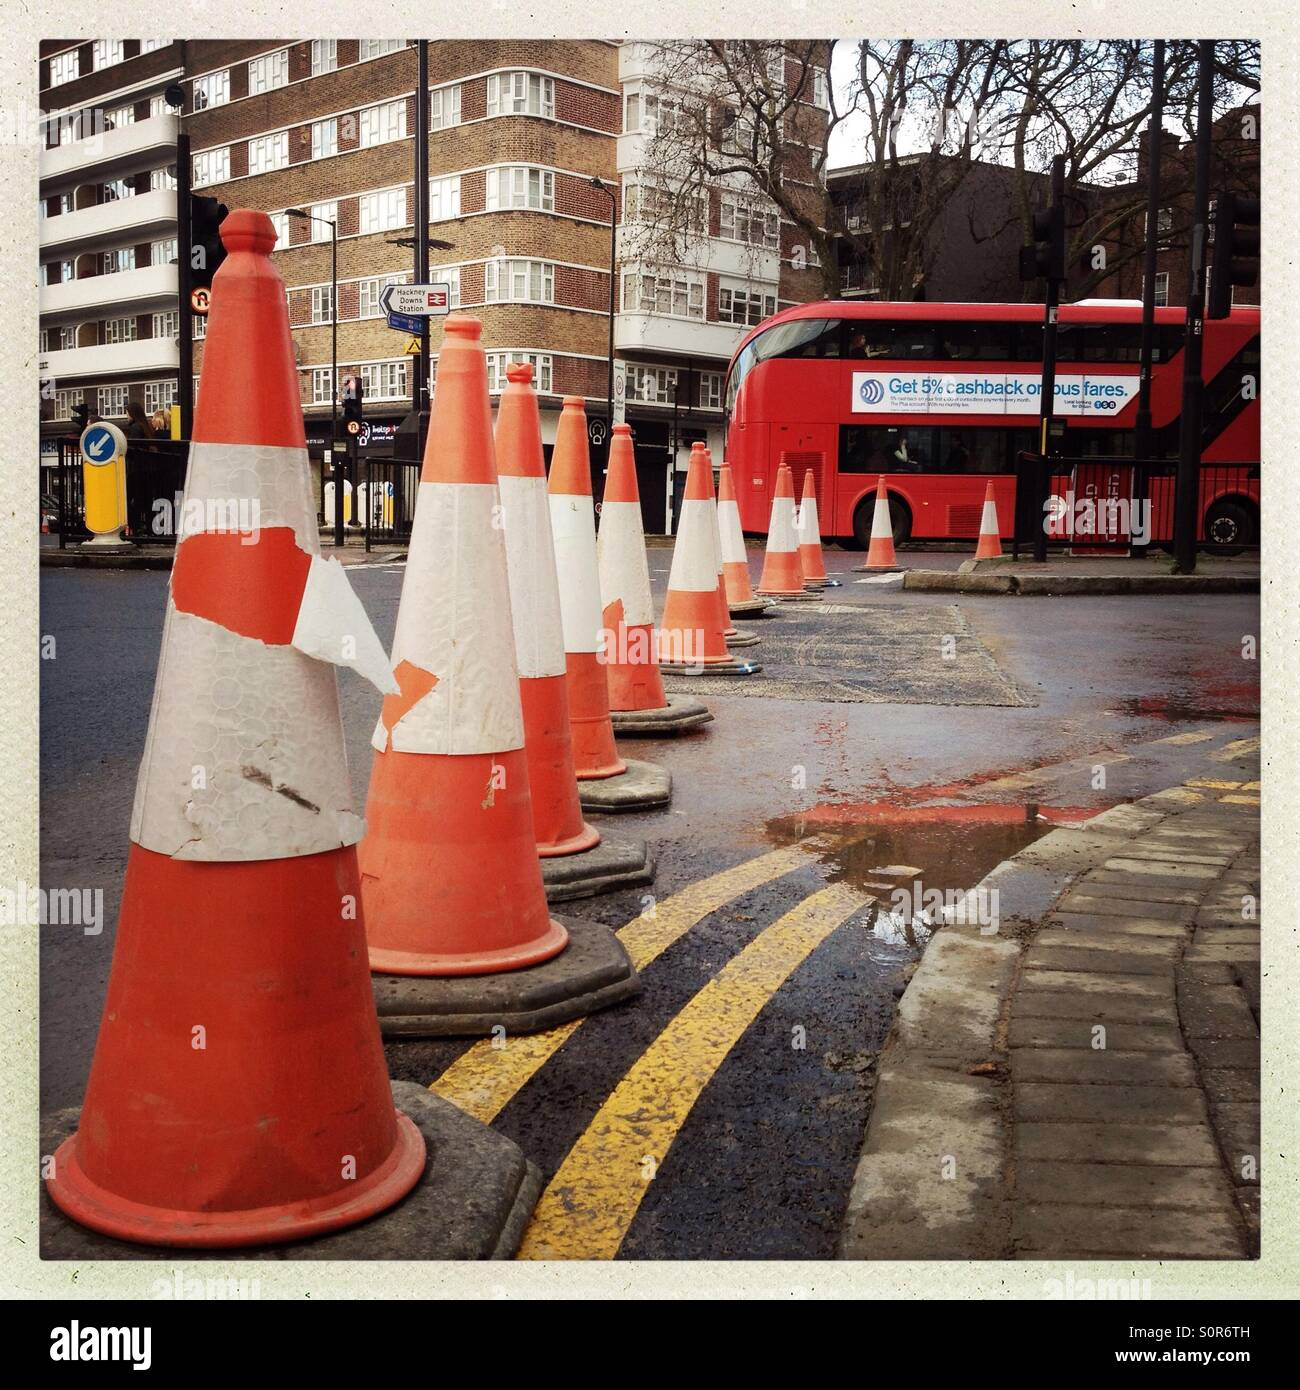 Traffic cones and London double decker bus at pembury Circus in London Hackney east London - Stock Image